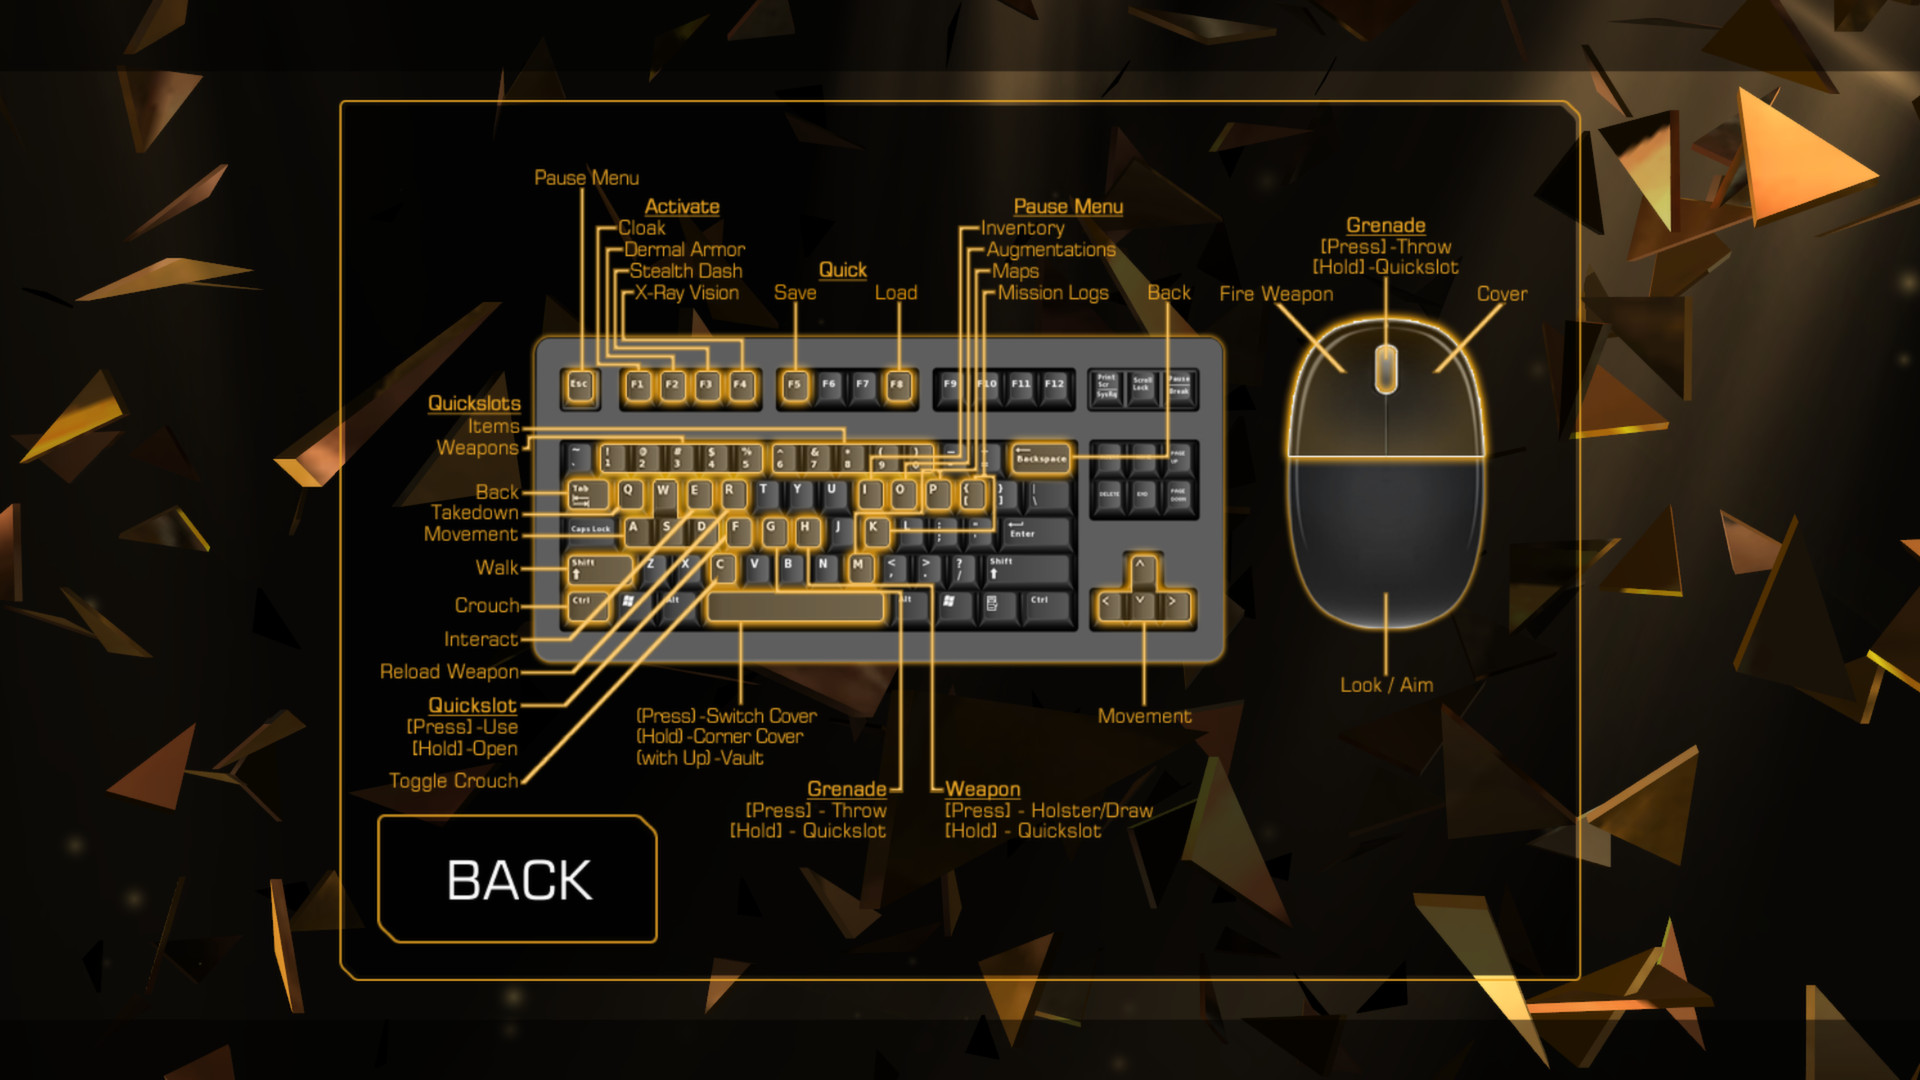 Deus Ex: The Fall System Requirements - Can I Run It